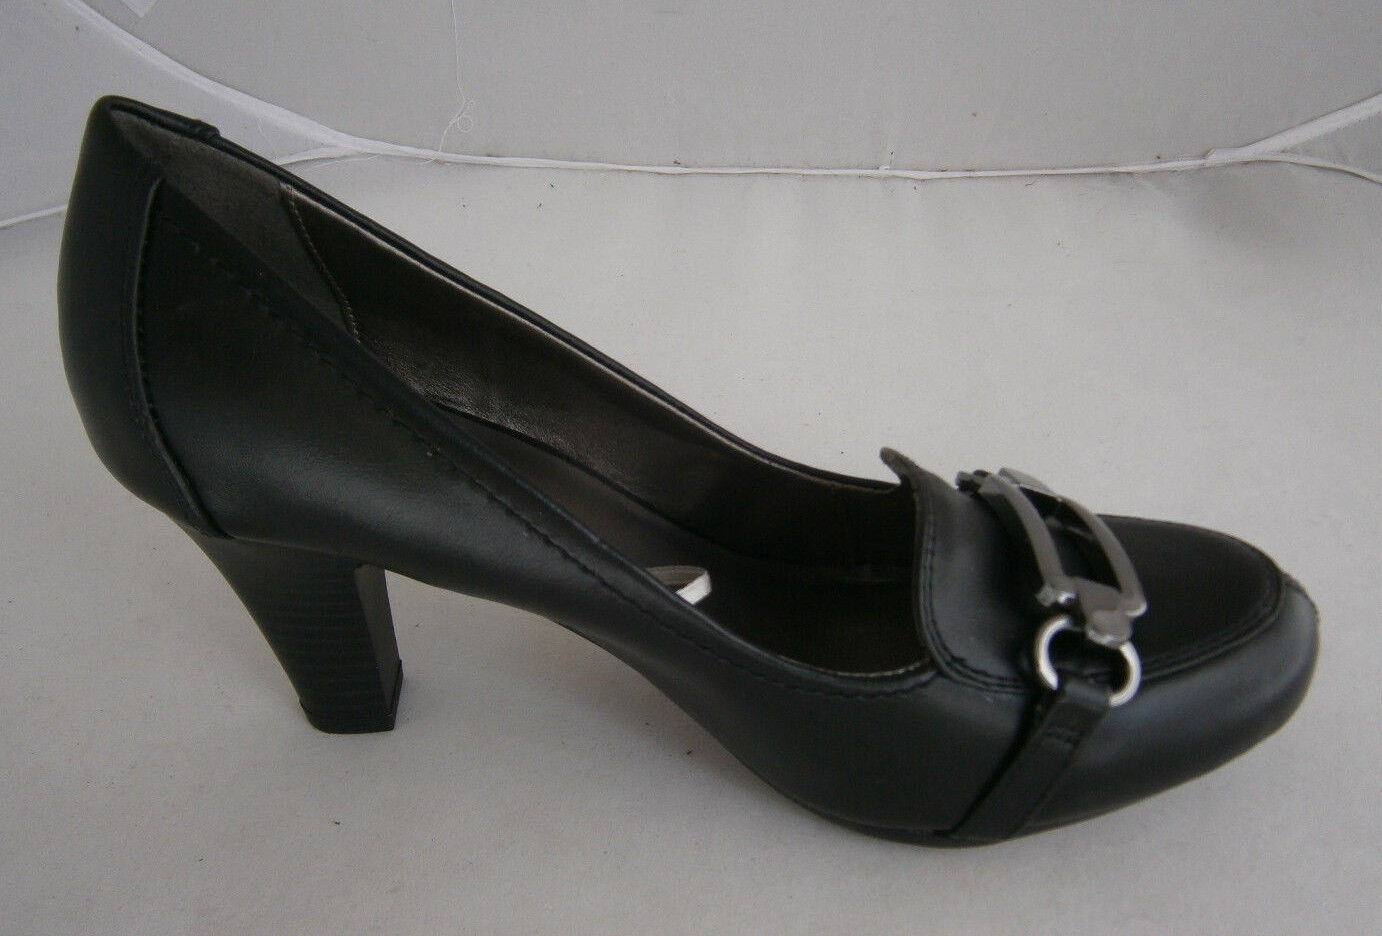 MADELINE DECORATIVE NEWELL SHOES PUMPS 8 BLACK DECORATIVE MADELINE METAL BUCKLE FAUX LEATHER 84eaa8